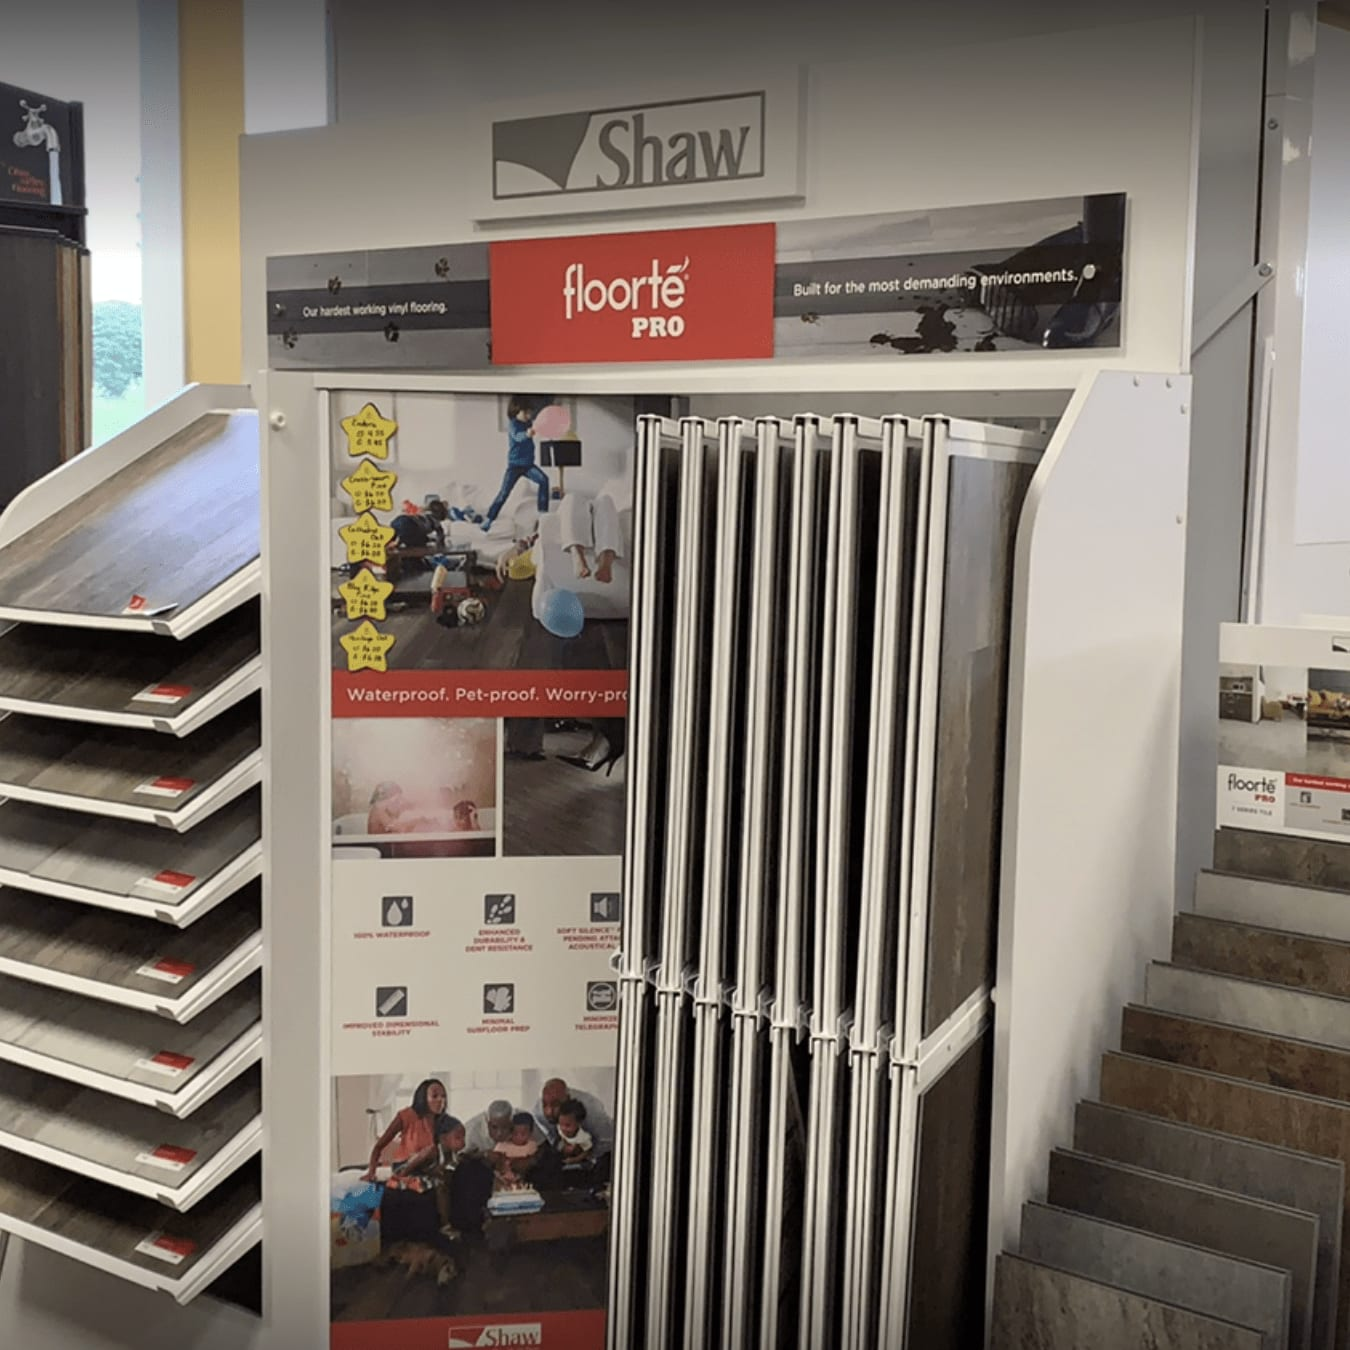 Shaw flooring products for your Midway, KY home from Kevin's Carpets